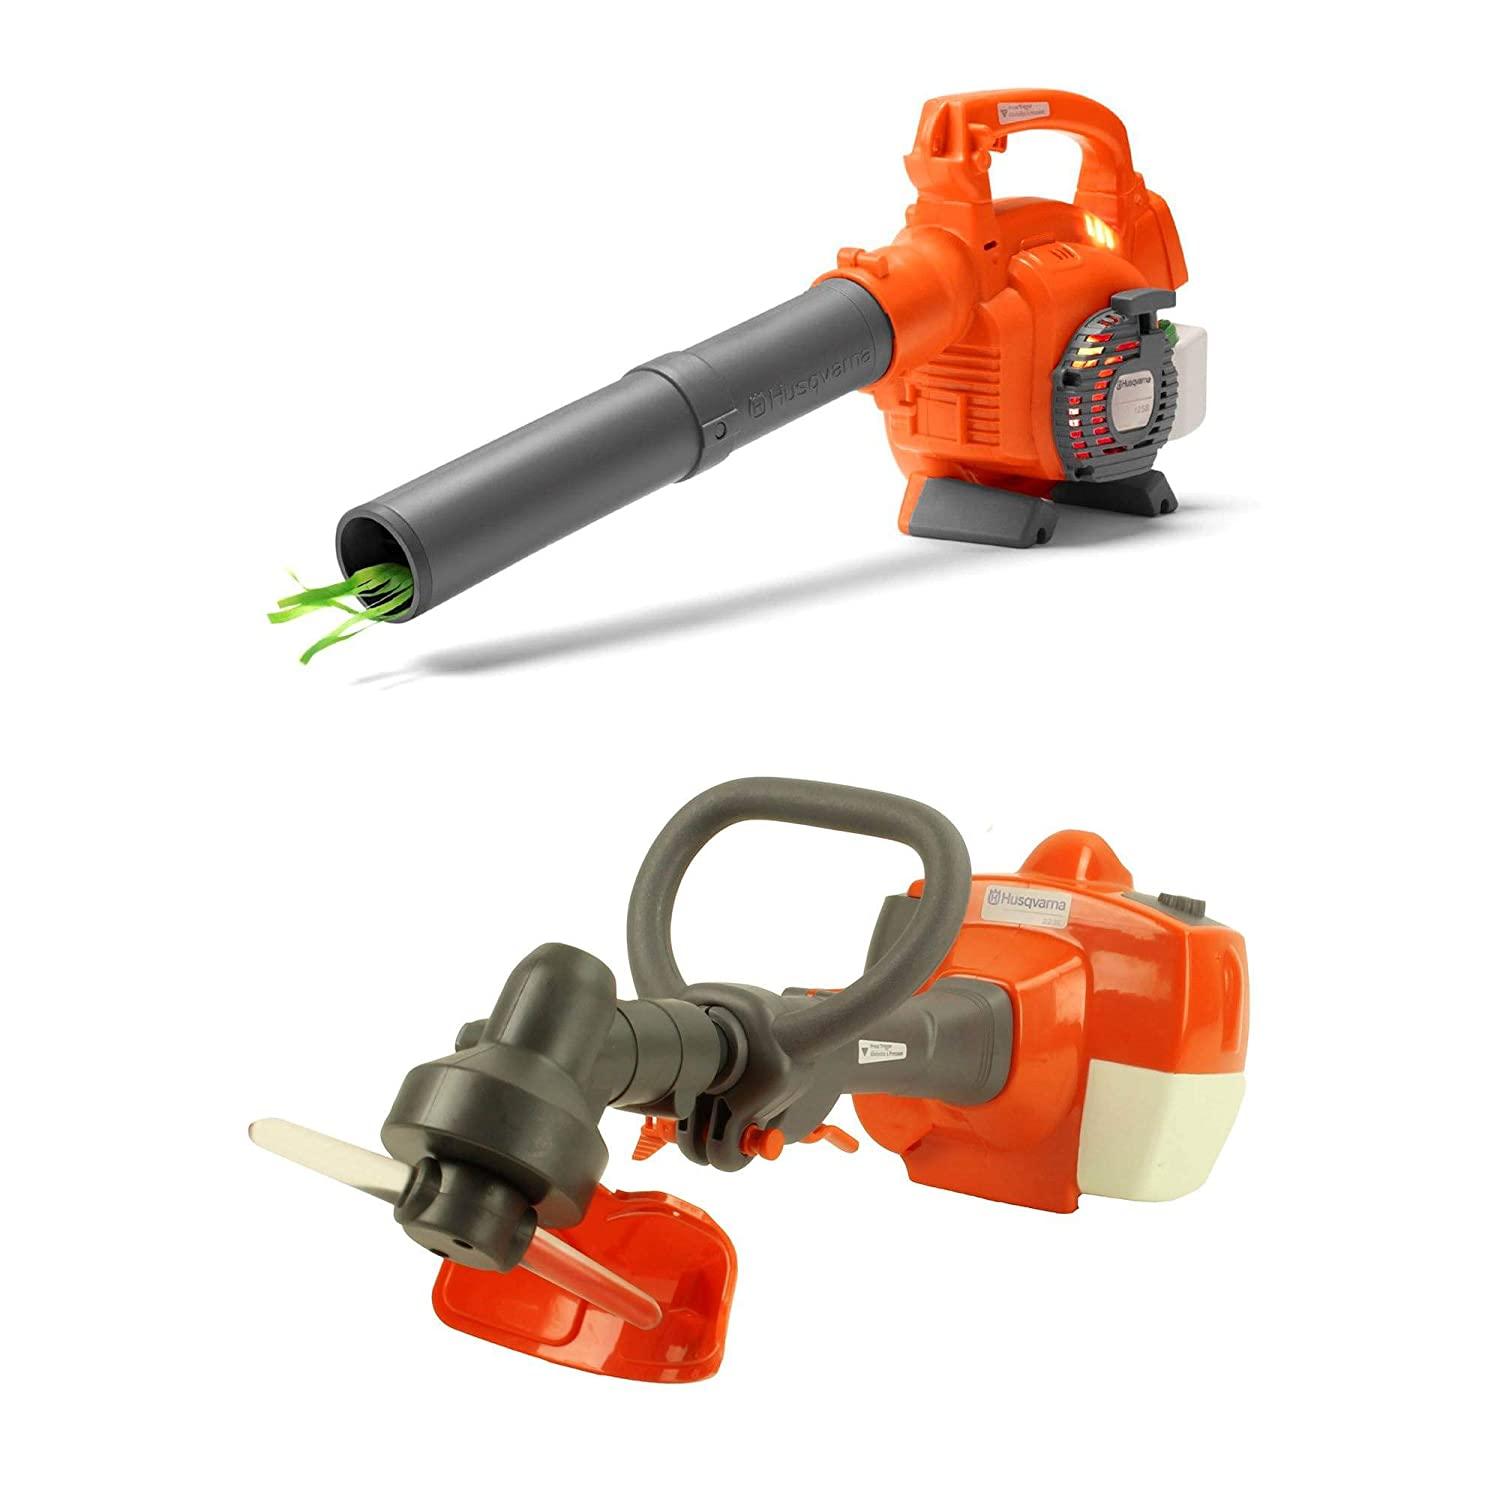 B07H7S453W Husqvarna Kids Battery Operated Toy Leaf Blower + Weed Eater w/ Sound 71fFRv5Yv8L